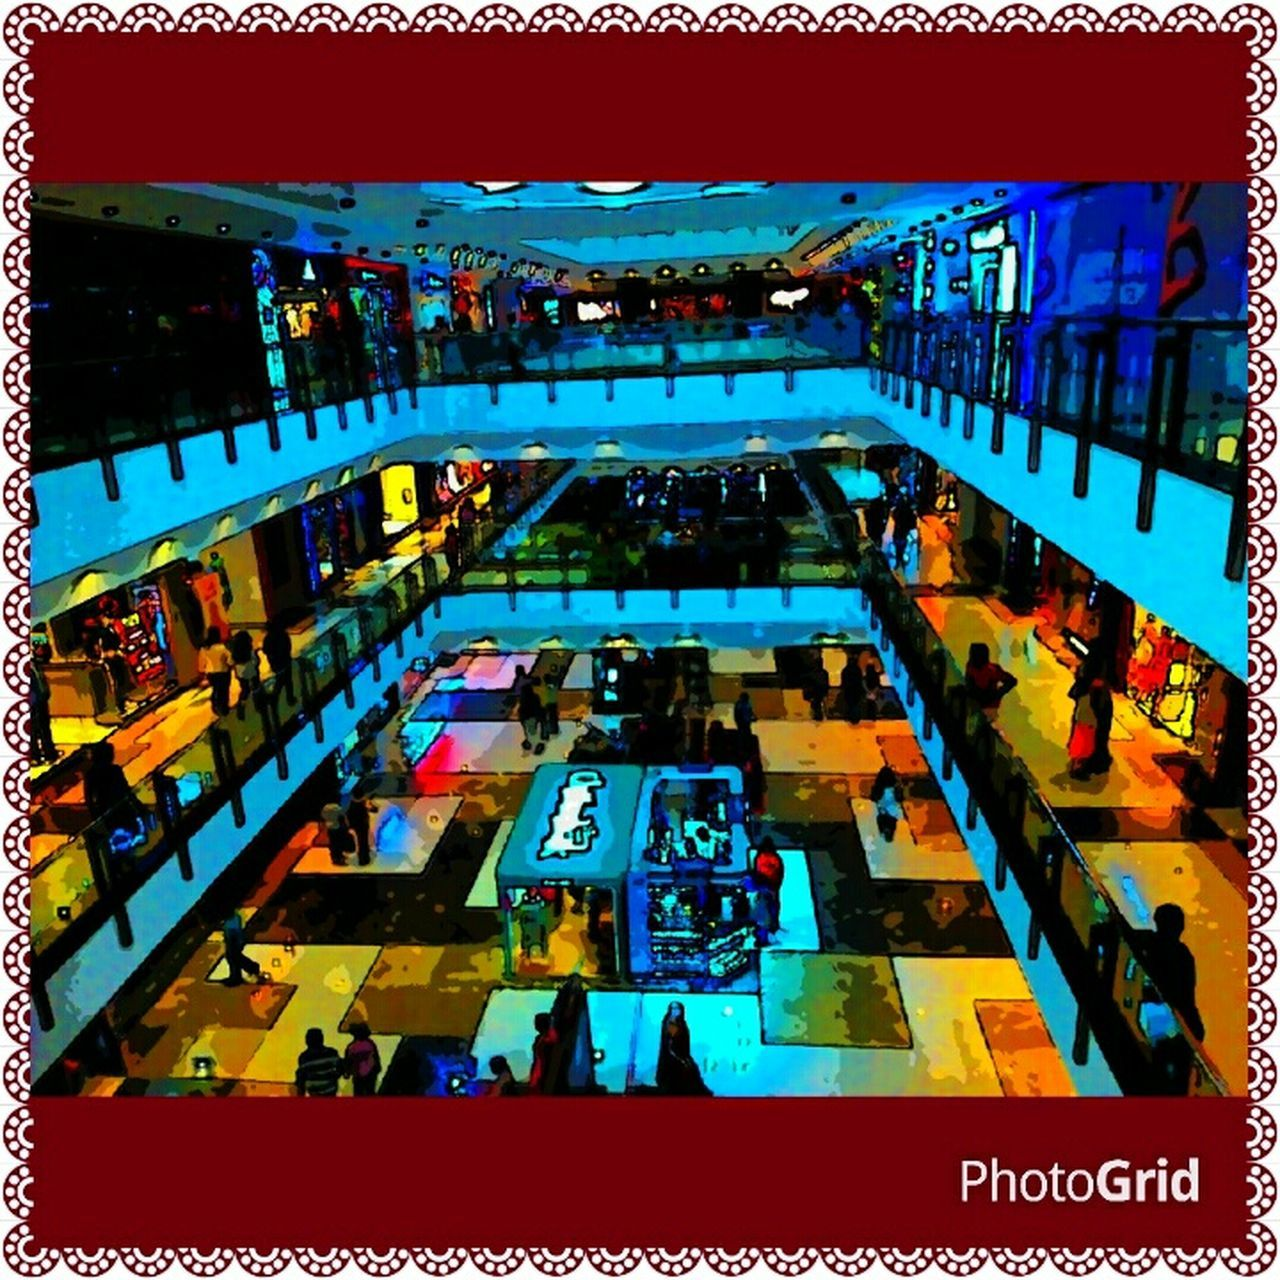 Shopping mall! Shopping ♡ Shopping Mall Taking Photos Check This Out Enjoying Life Hello World Hanging Out Yeah Springtime! Surprises Showcase March Remembering The Times Quality Photography Visual Poetry Ayub The Poet Ayubkhan.U Quintessential Q Exceptional Photographs True Colours Of Life